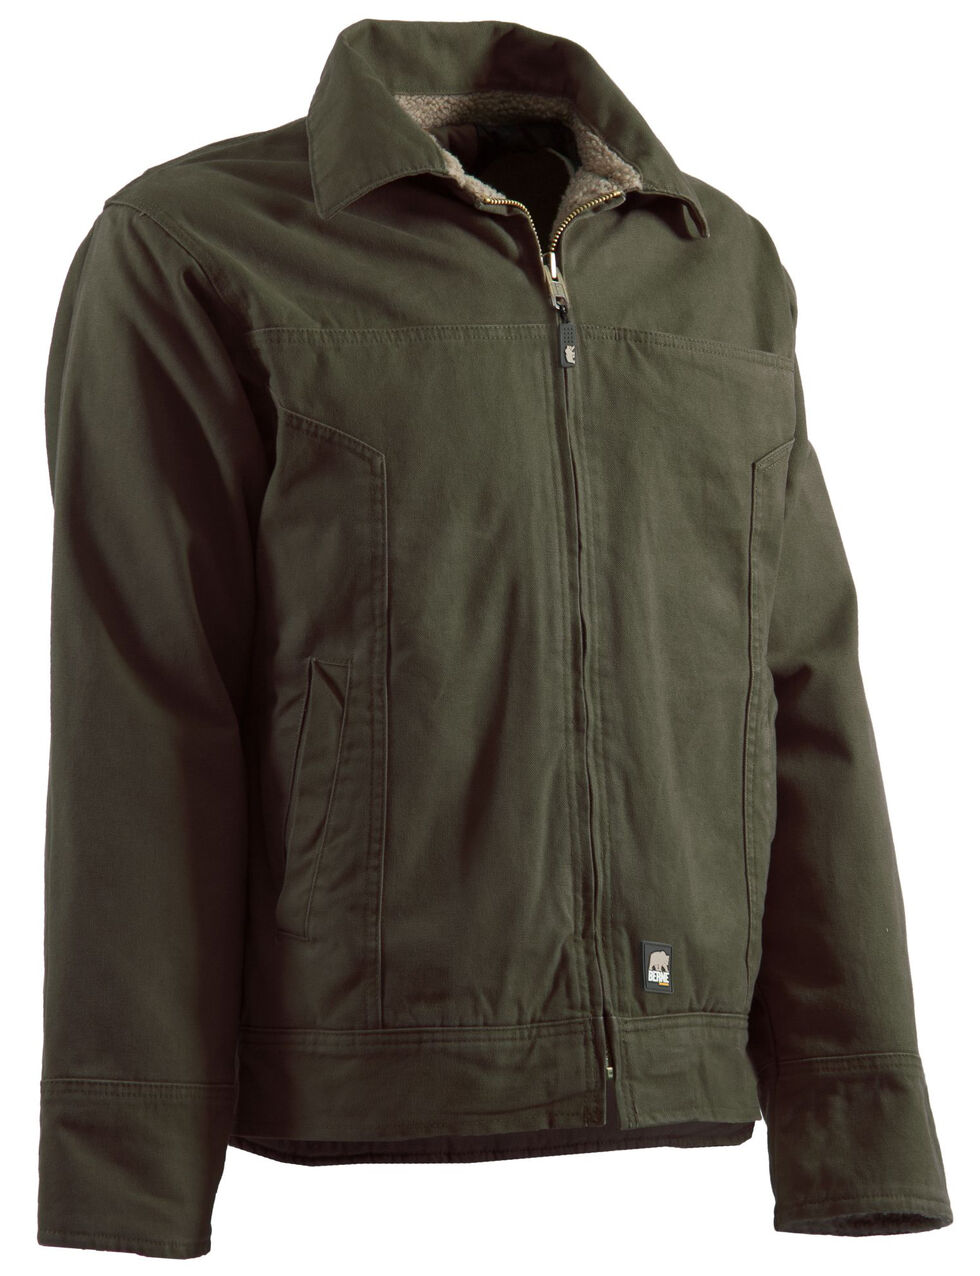 Berne Hickory Washed Aviator Jacket, Moss, hi-res